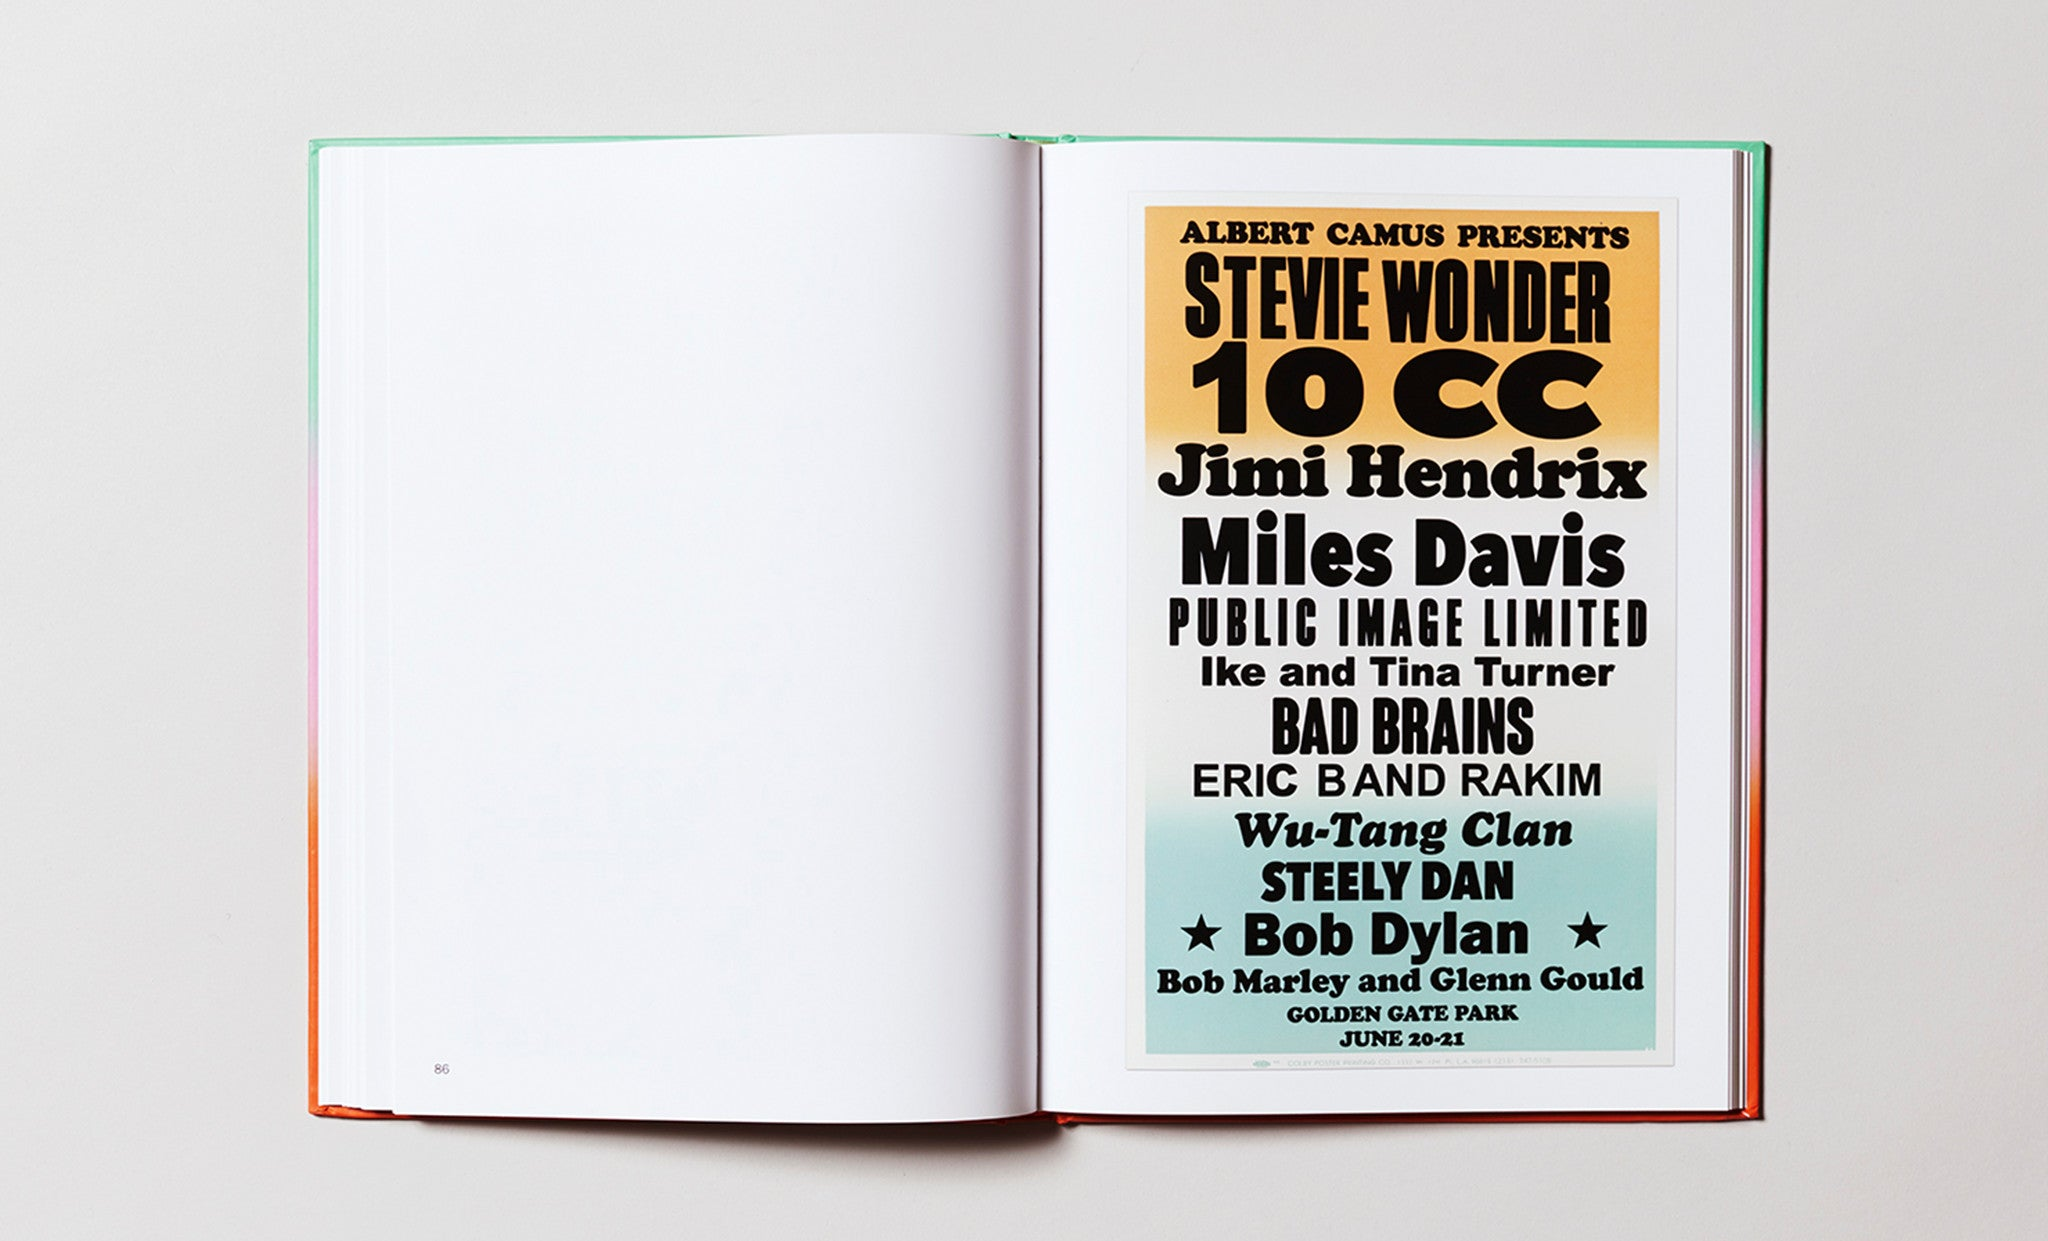 Imaginary Concerts book, by Peter Coffin, designed by Adam Turnbull and Pacific, published by Printed Matter and Anthology Editions